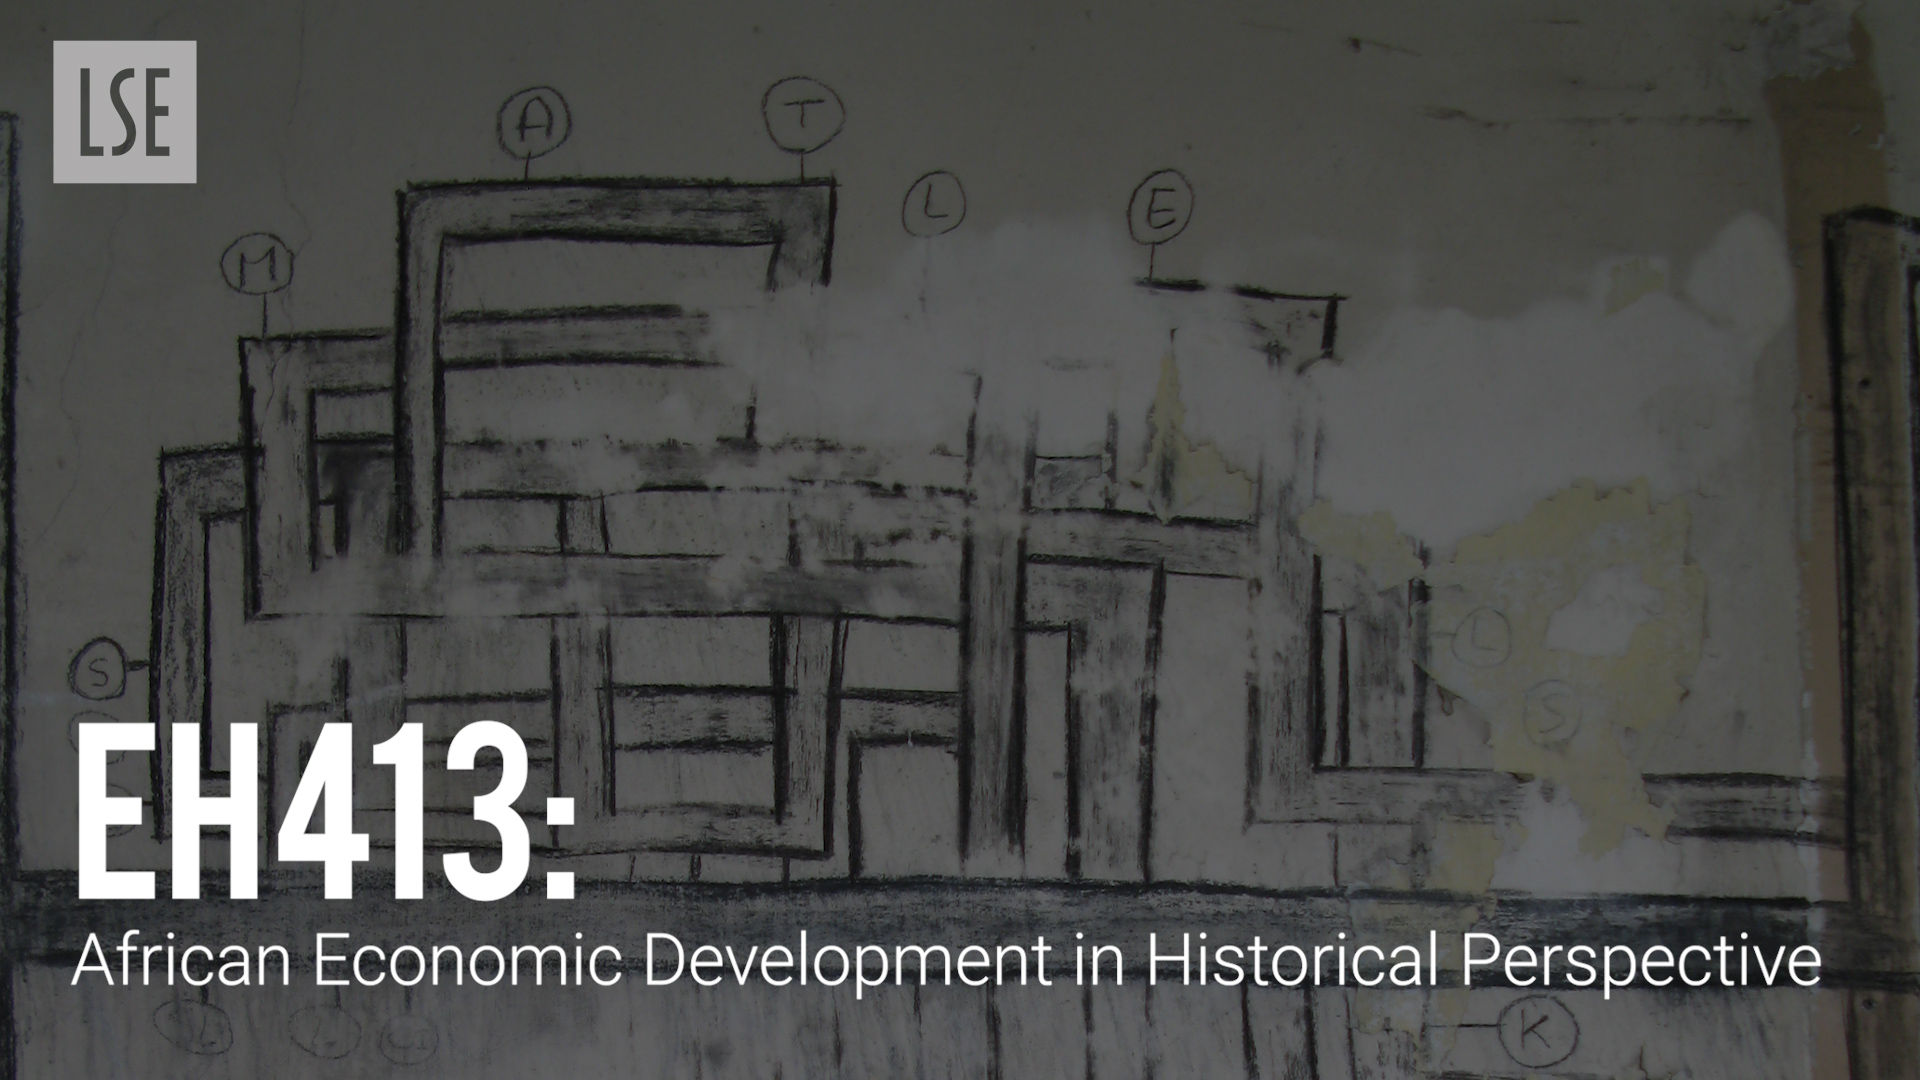 EH413 - African Economic Development in Historical Perspective